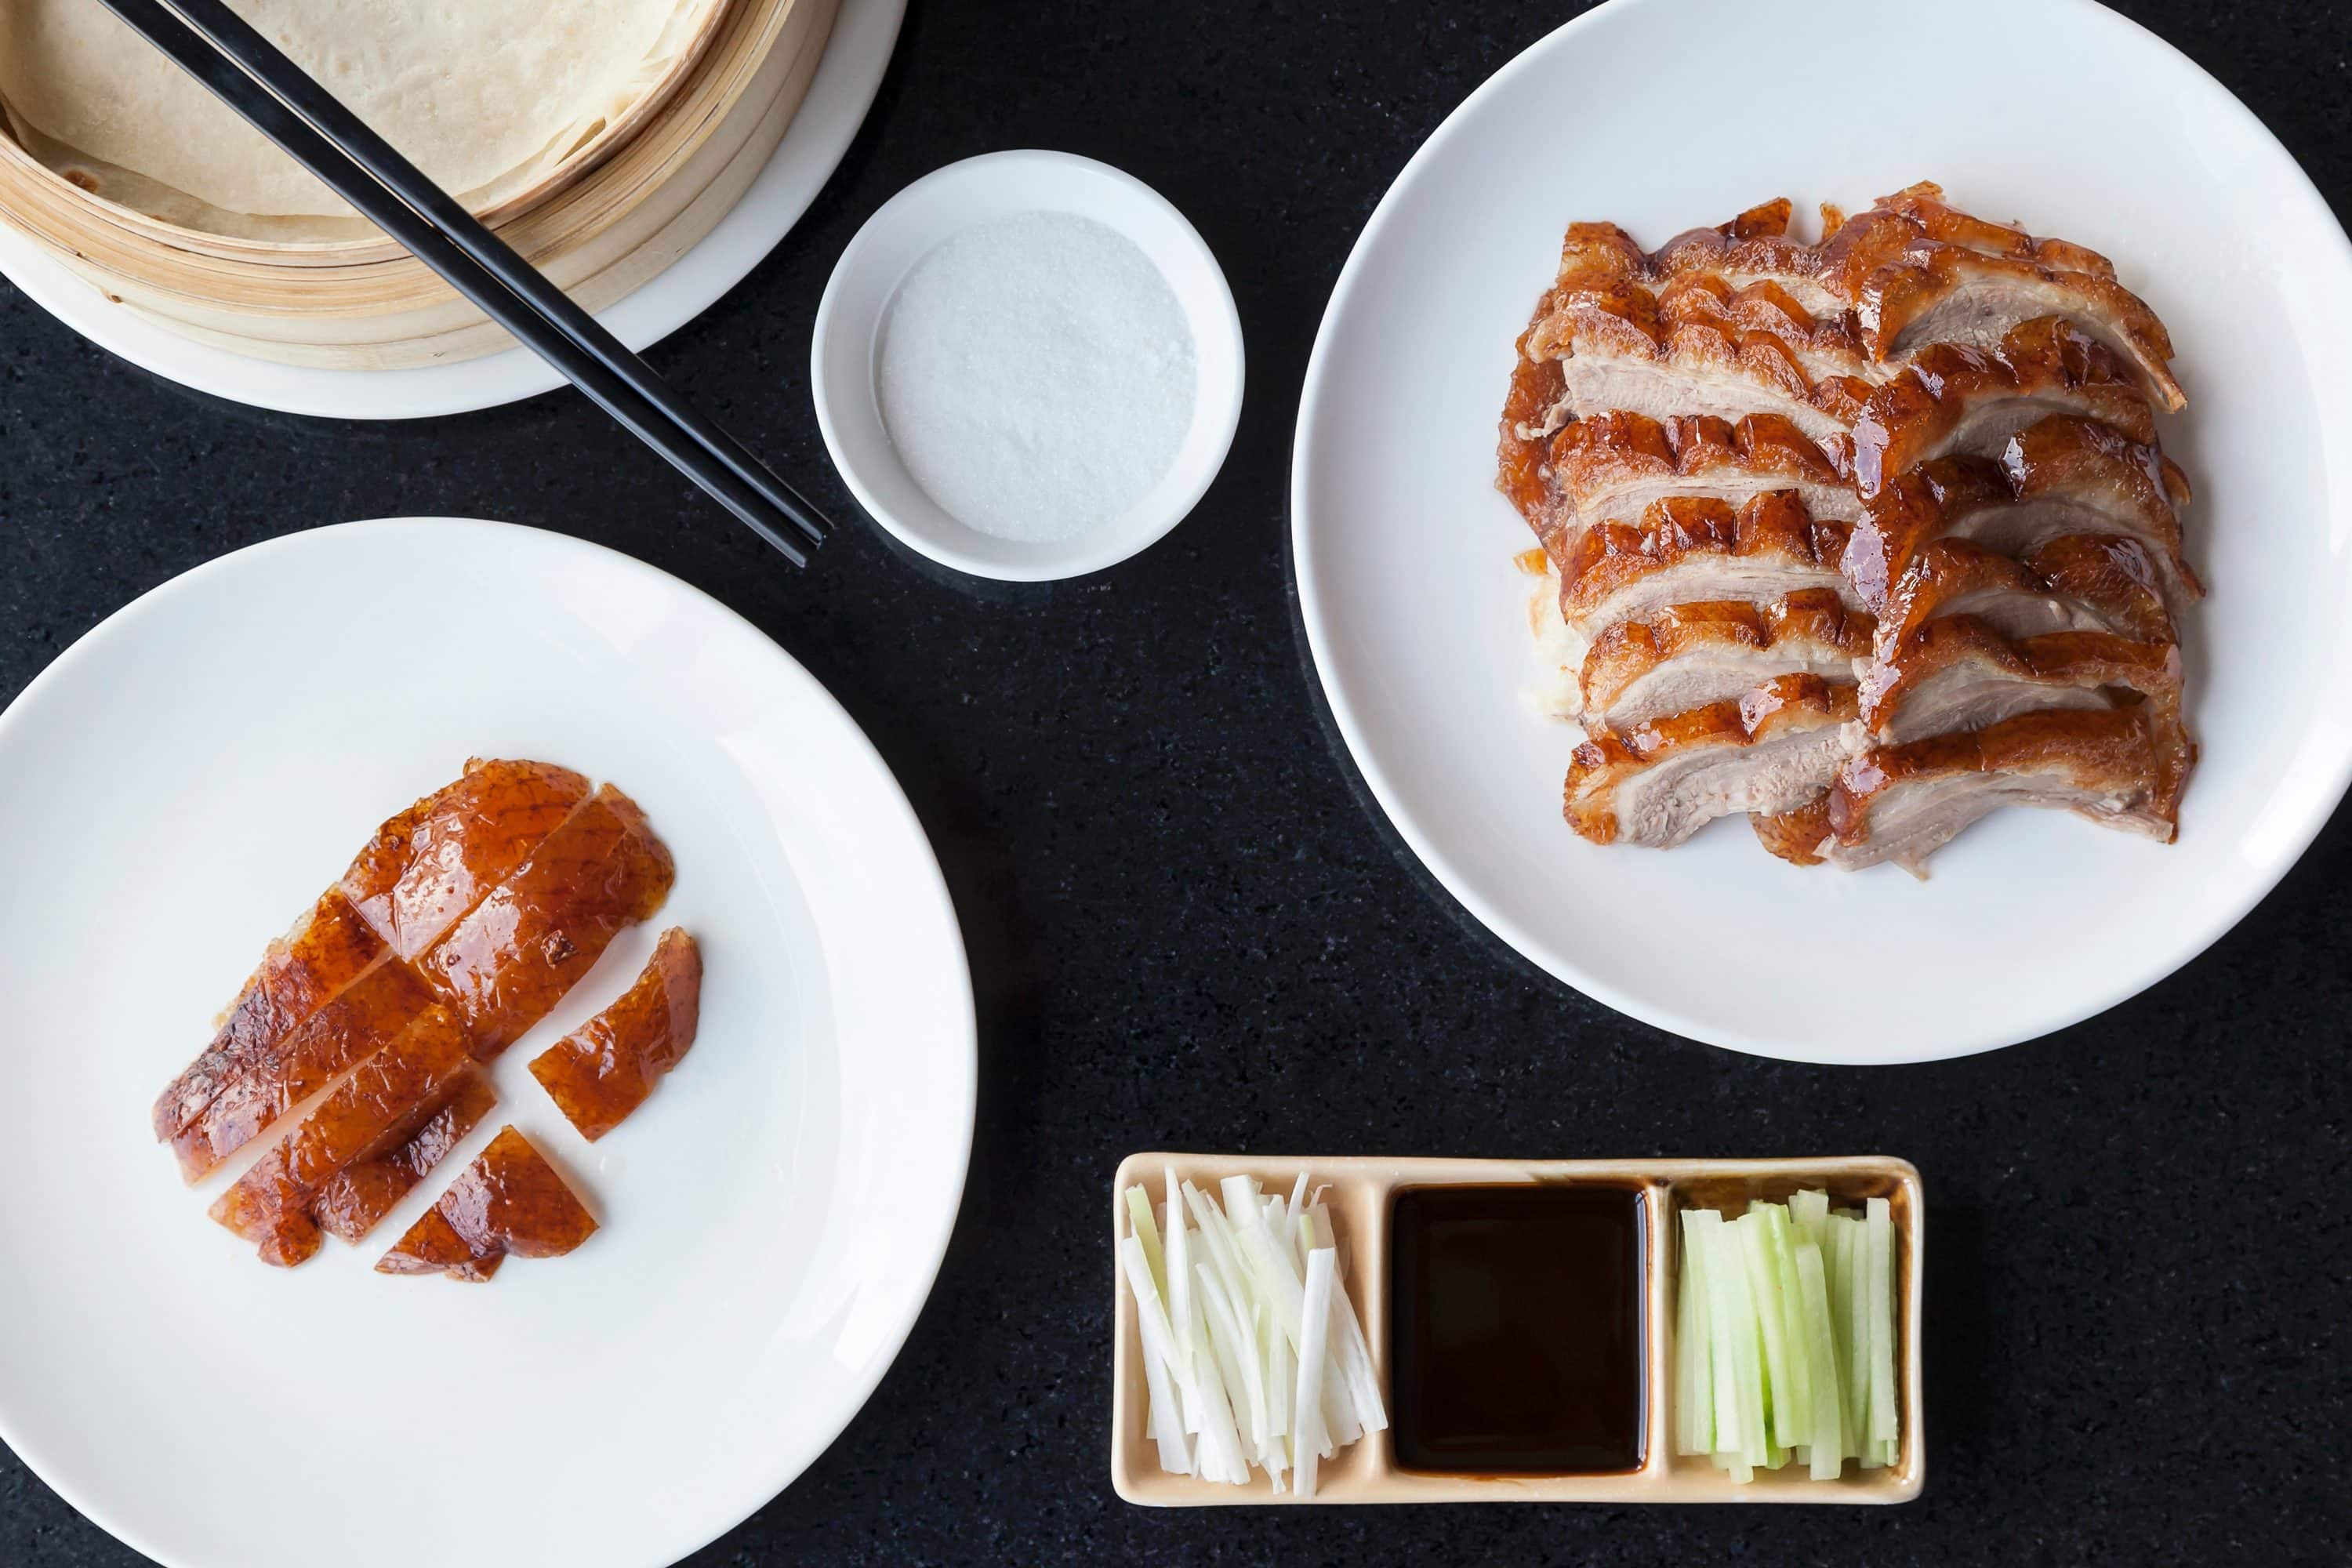 A table laid out with plates of sliced Peking duck